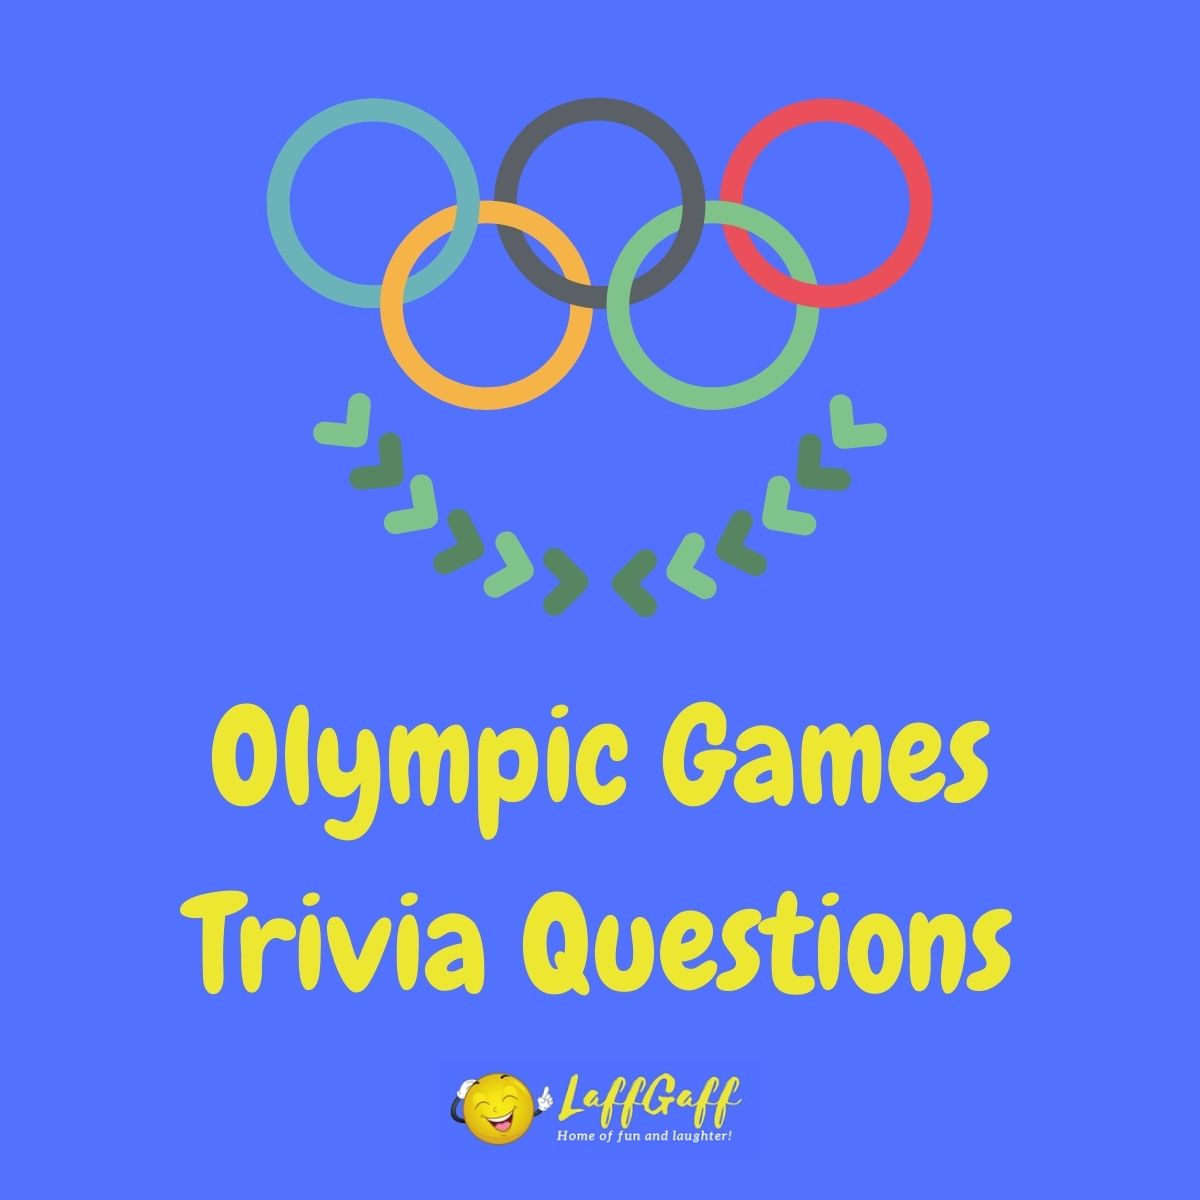 Featured image for a page of Olympic Games trivia questions.